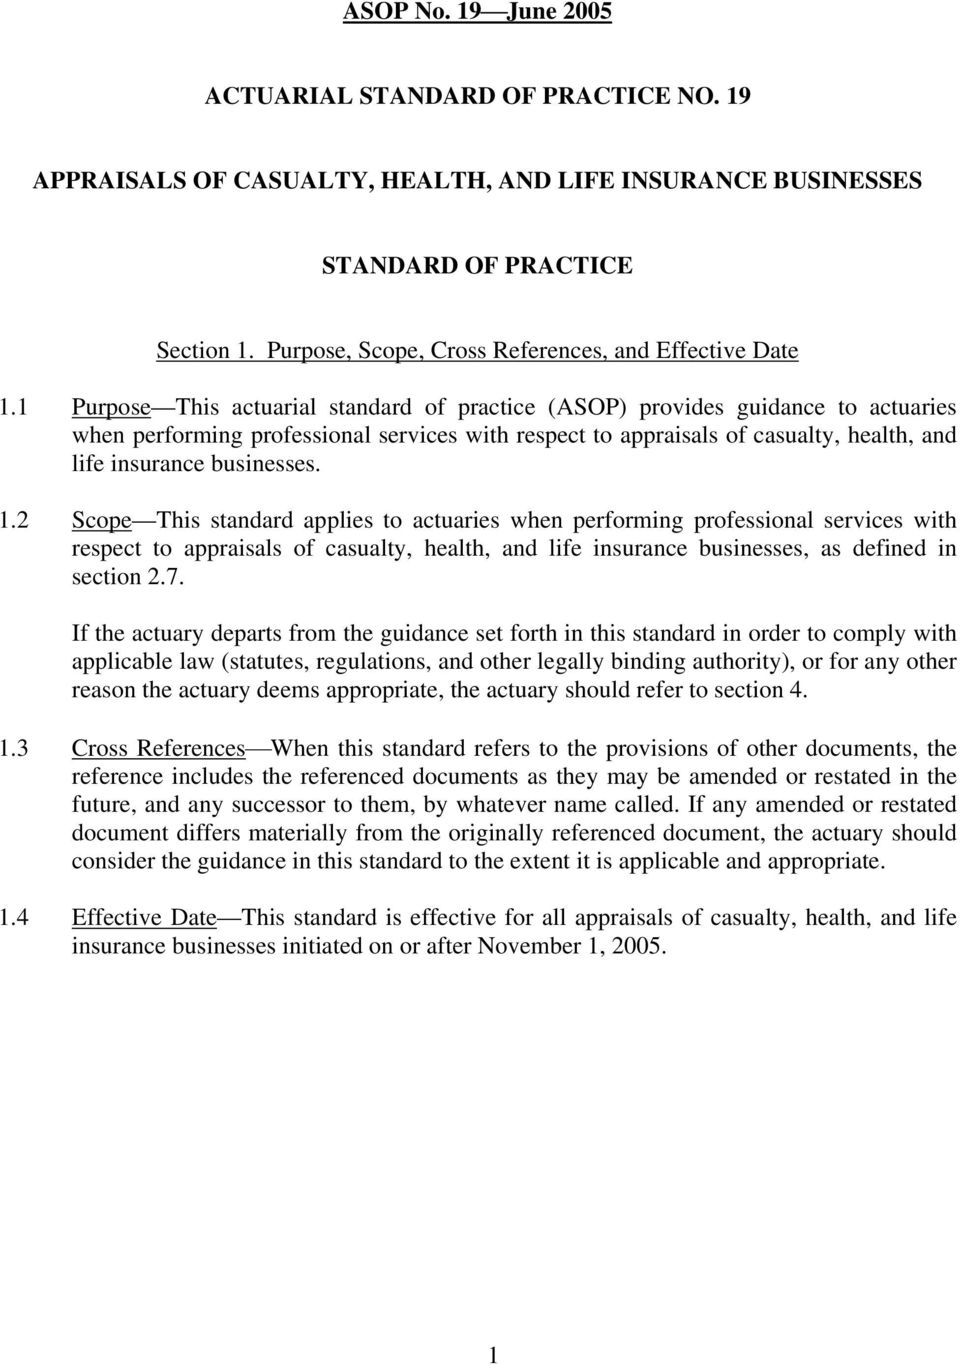 1.2 Scope This standard applies to actuaries when performing professional services with respect to appraisals of casualty, health, and life insurance businesses, as defined in section 2.7.